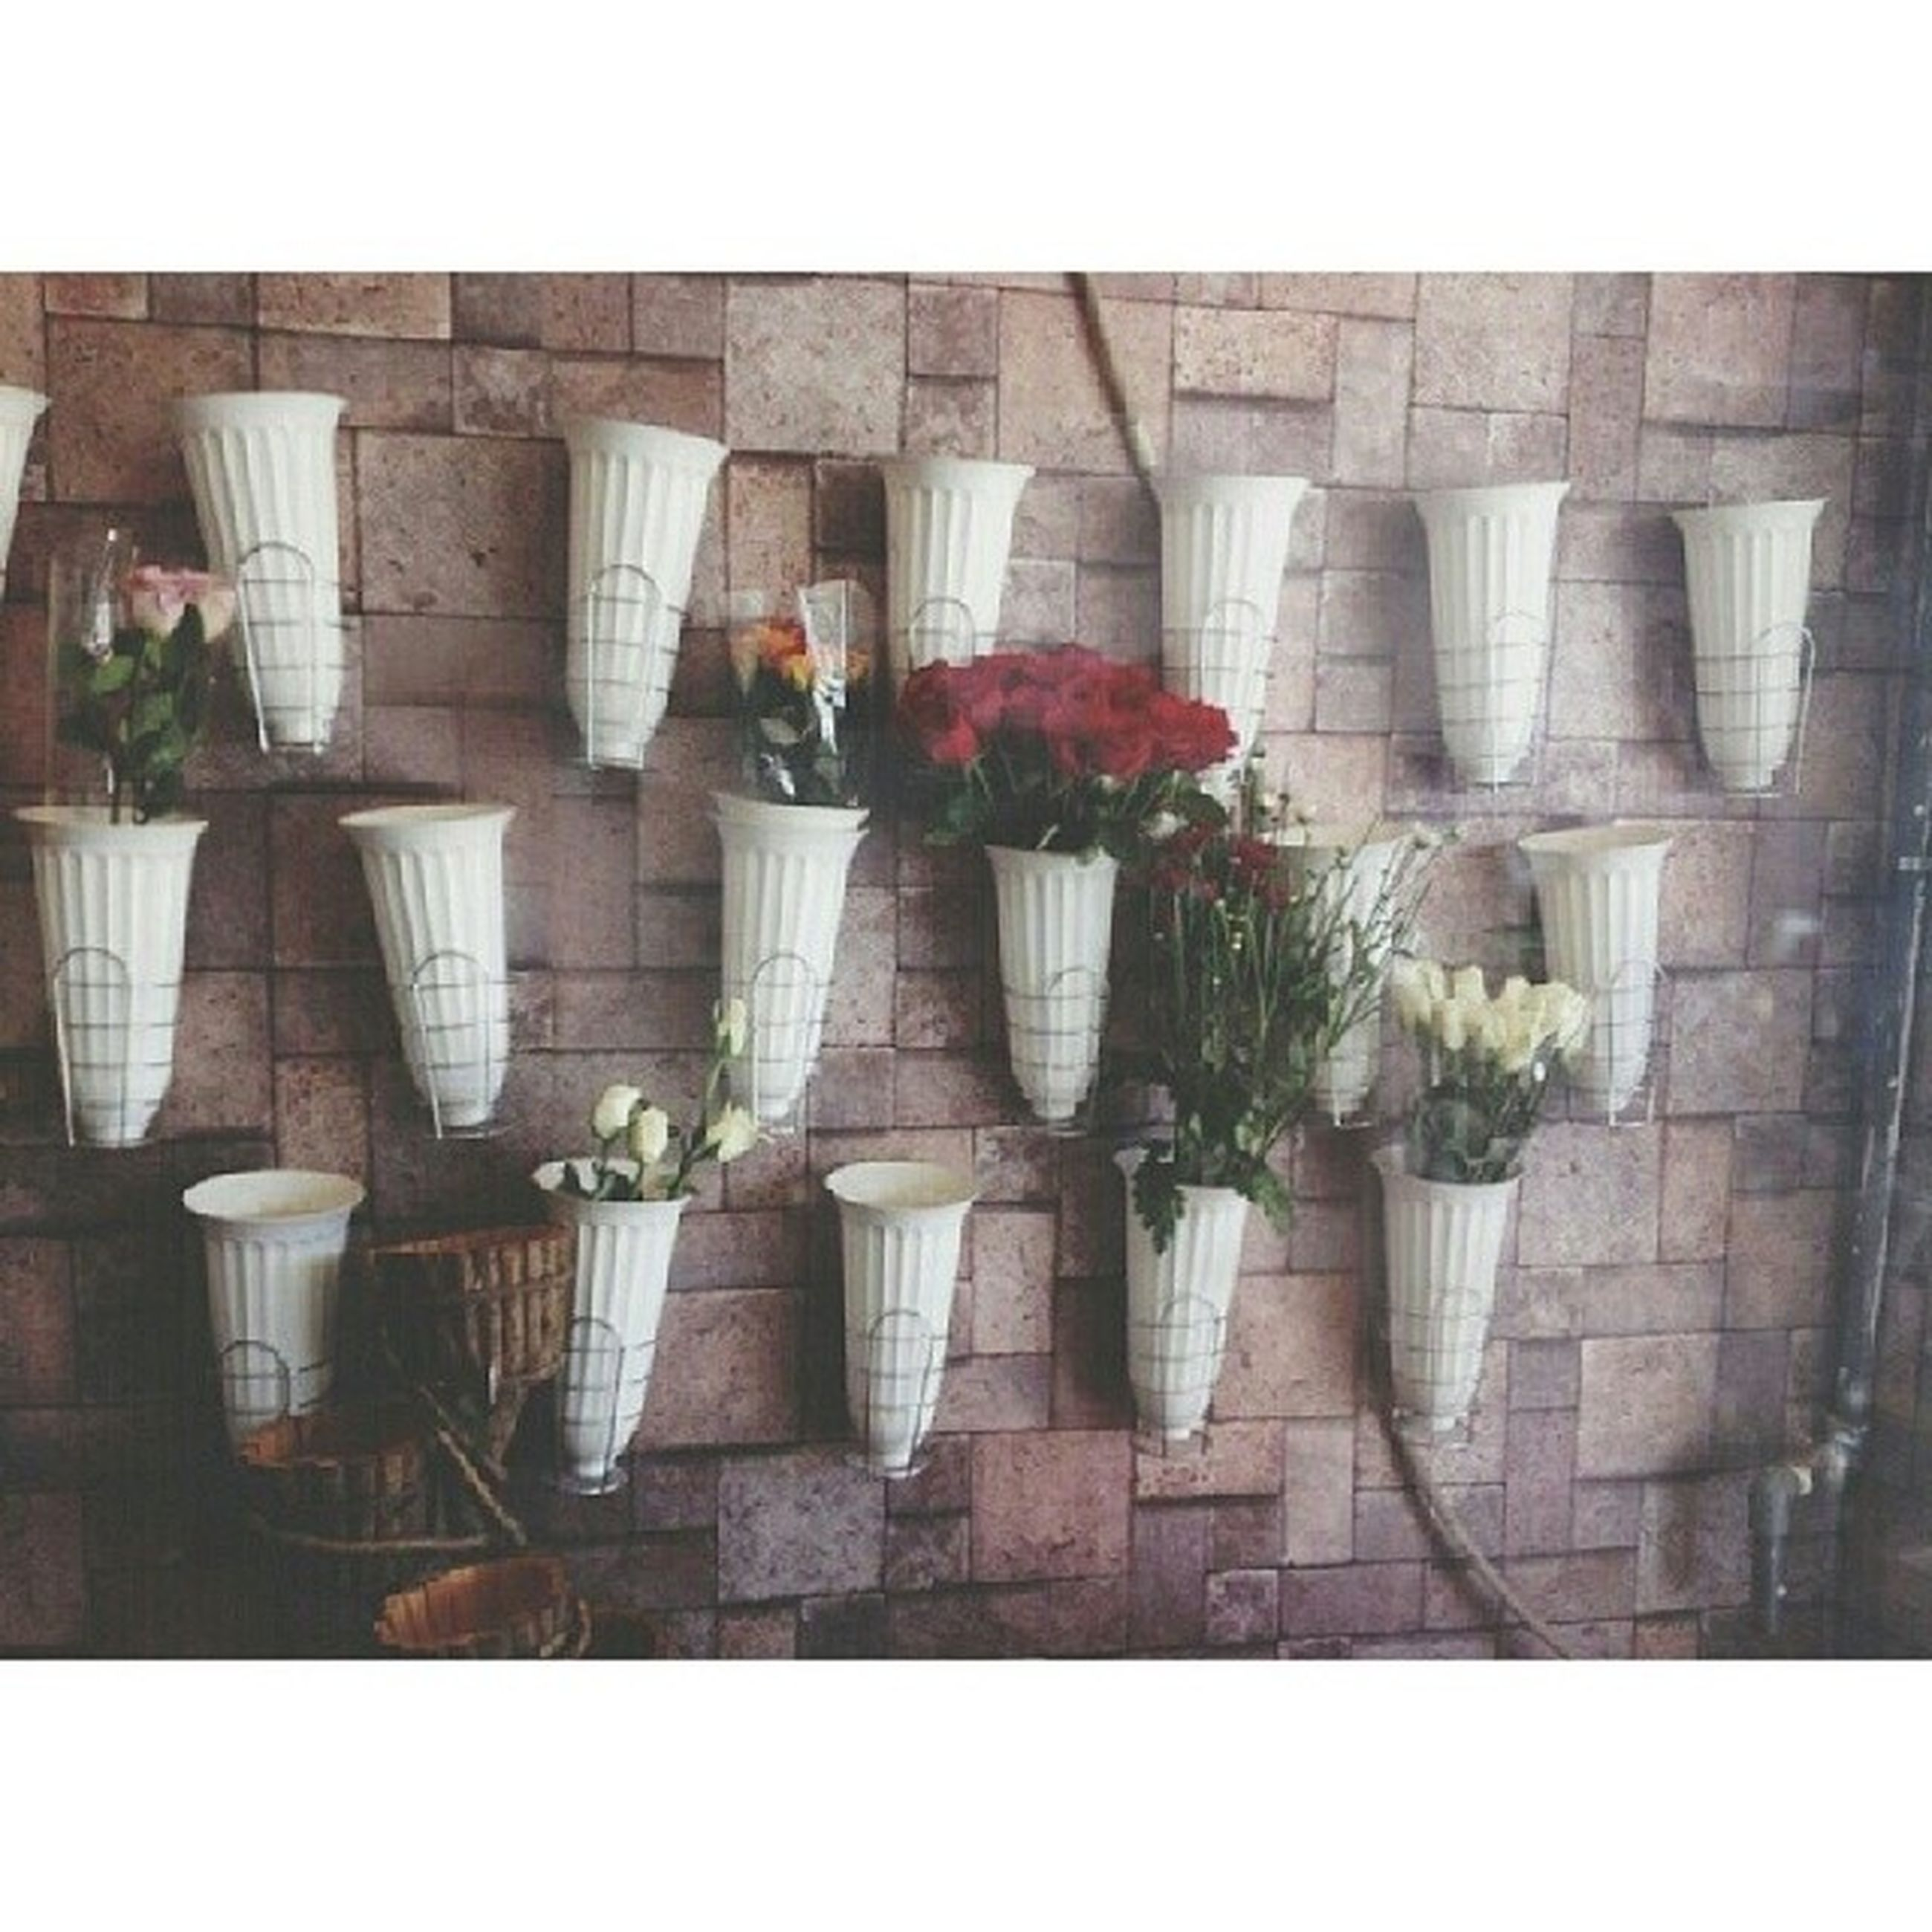 potted plant, transfer print, plant, auto post production filter, flower, wall - building feature, indoors, growth, built structure, architecture, flower pot, wall, shadow, tiled floor, window, sunlight, arrangement, decoration, day, side by side